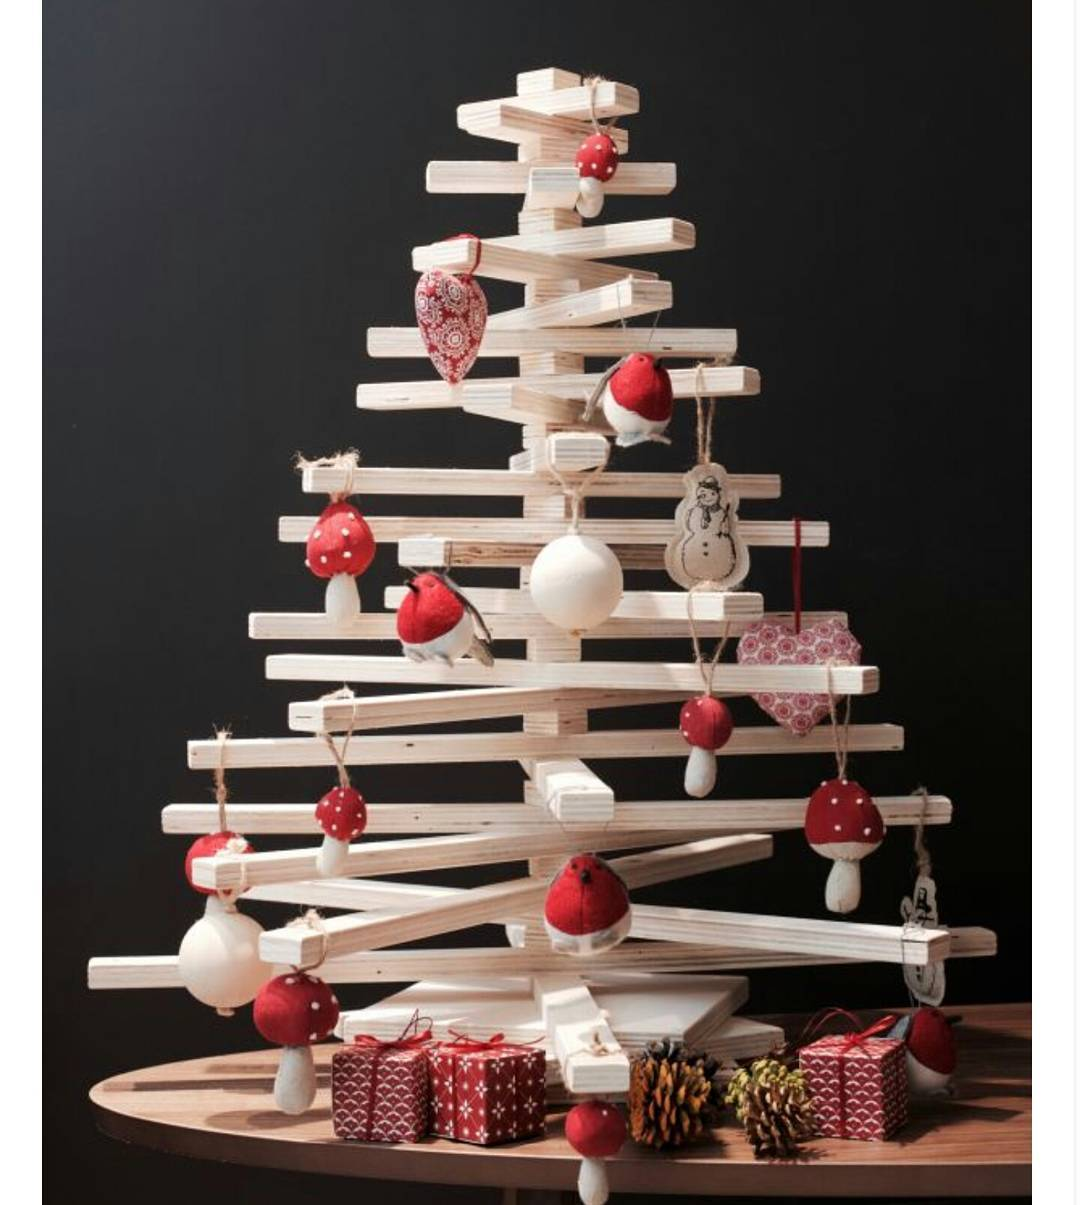 Wooden ChriWooden Christmas Trees (2)stmas Trees (2)